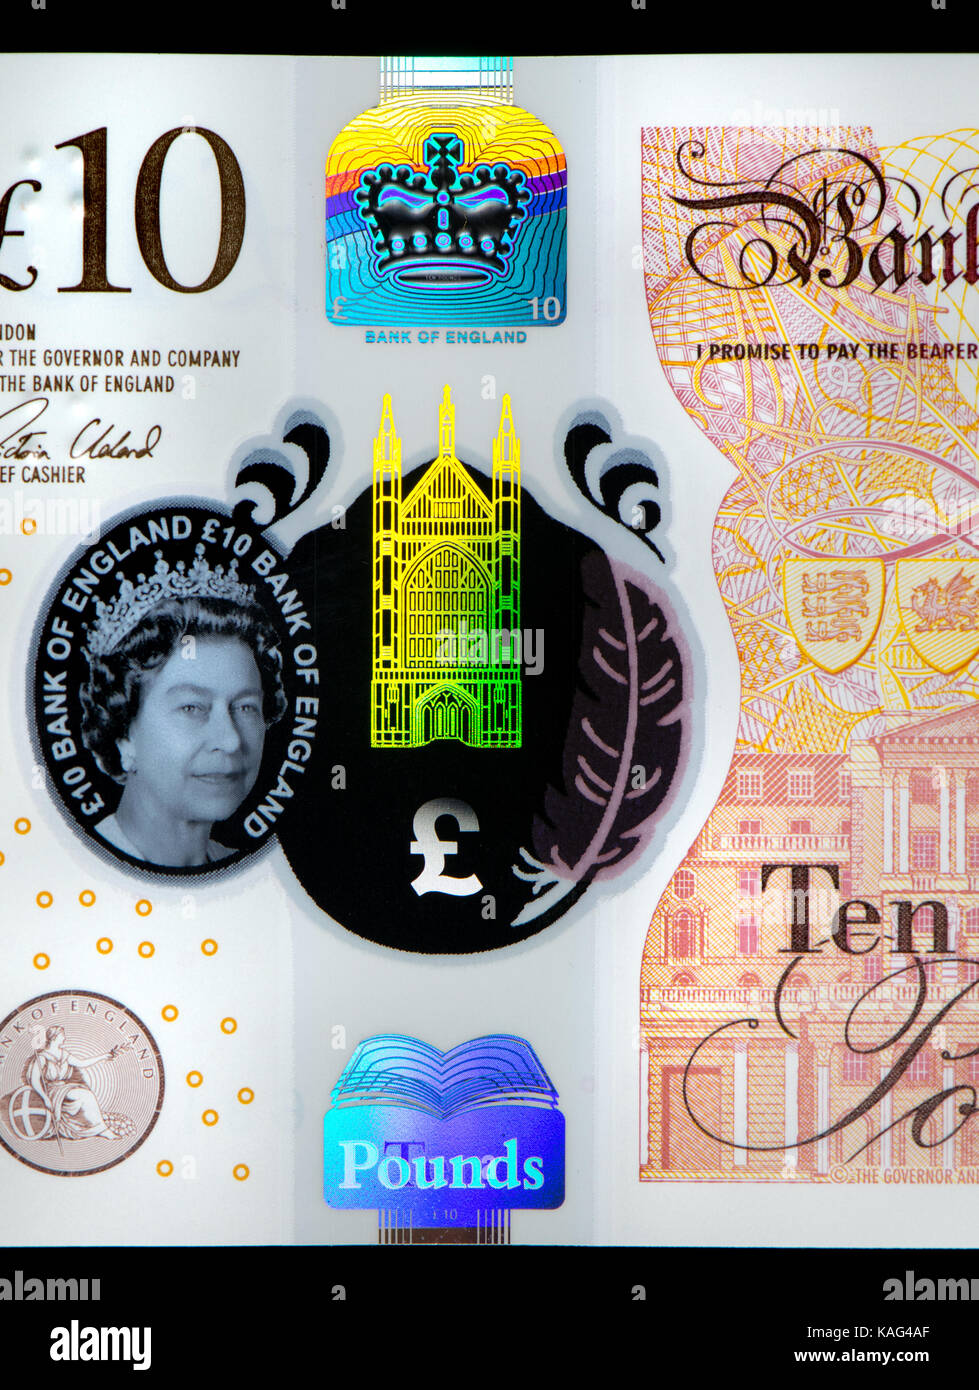 New Bank of England polymer £10 note (September 2017) showing security feature - window and gold foil Winchester - Stock Image